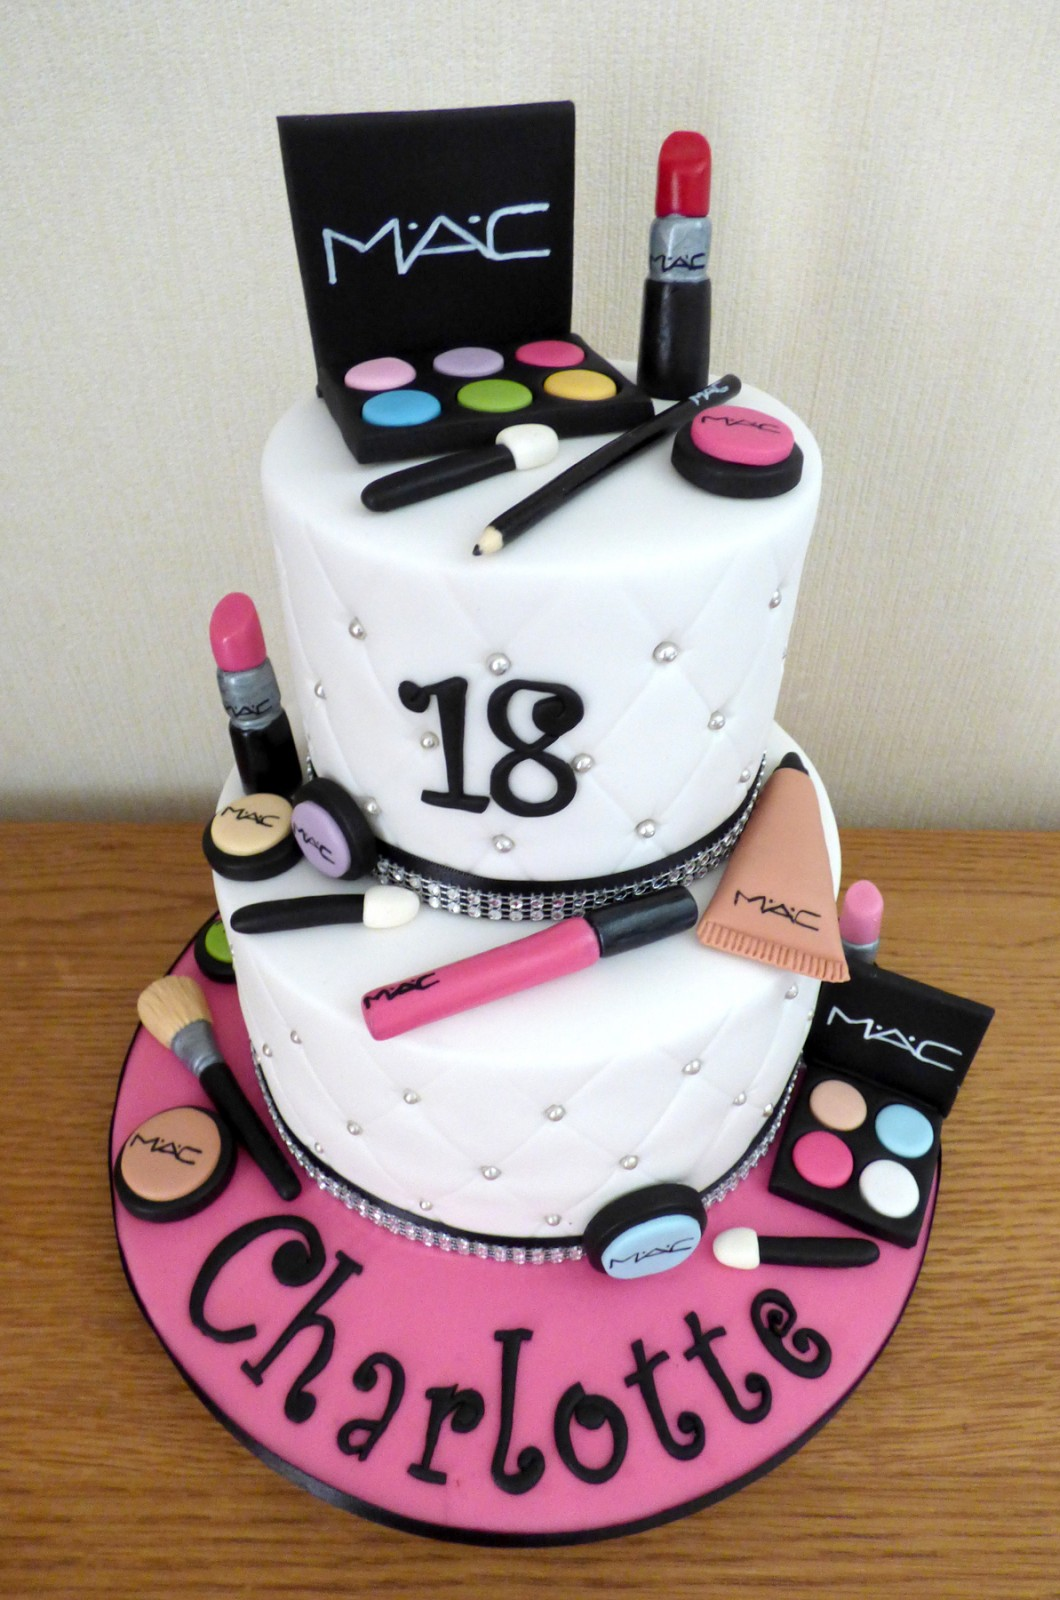 2 Tier Mac Make Up Pamper Party Birthday Cake Susie S Cakes